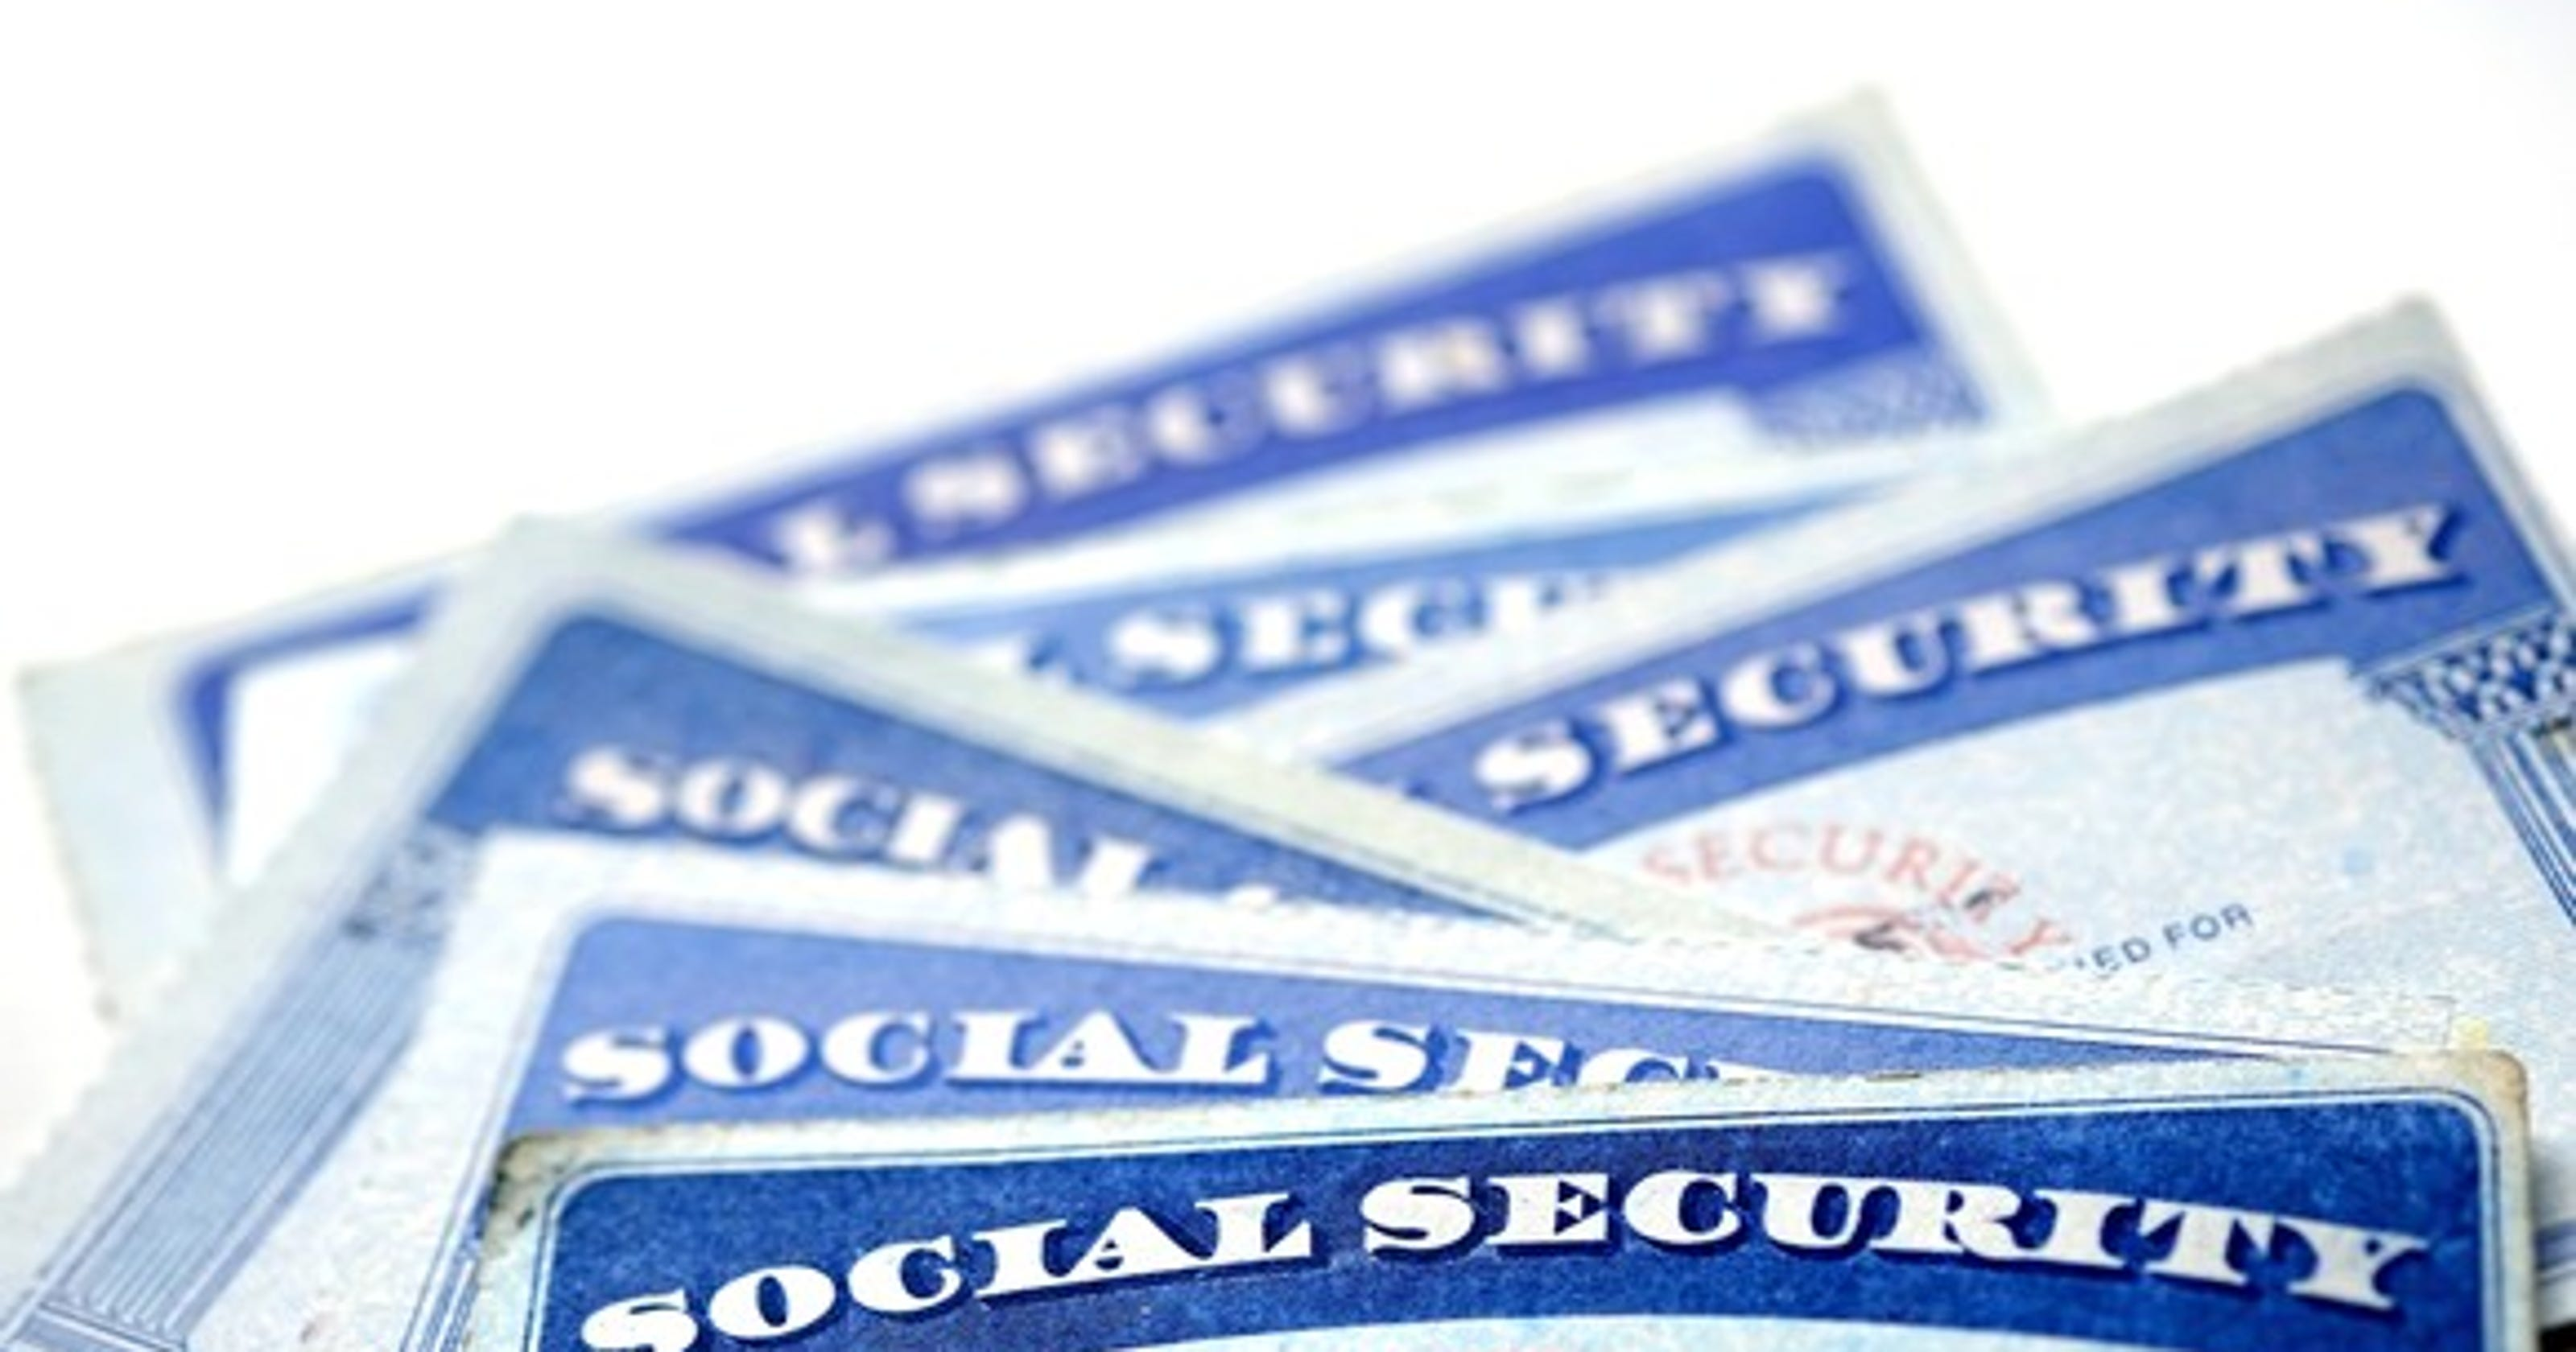 2019 taxable social security benefits